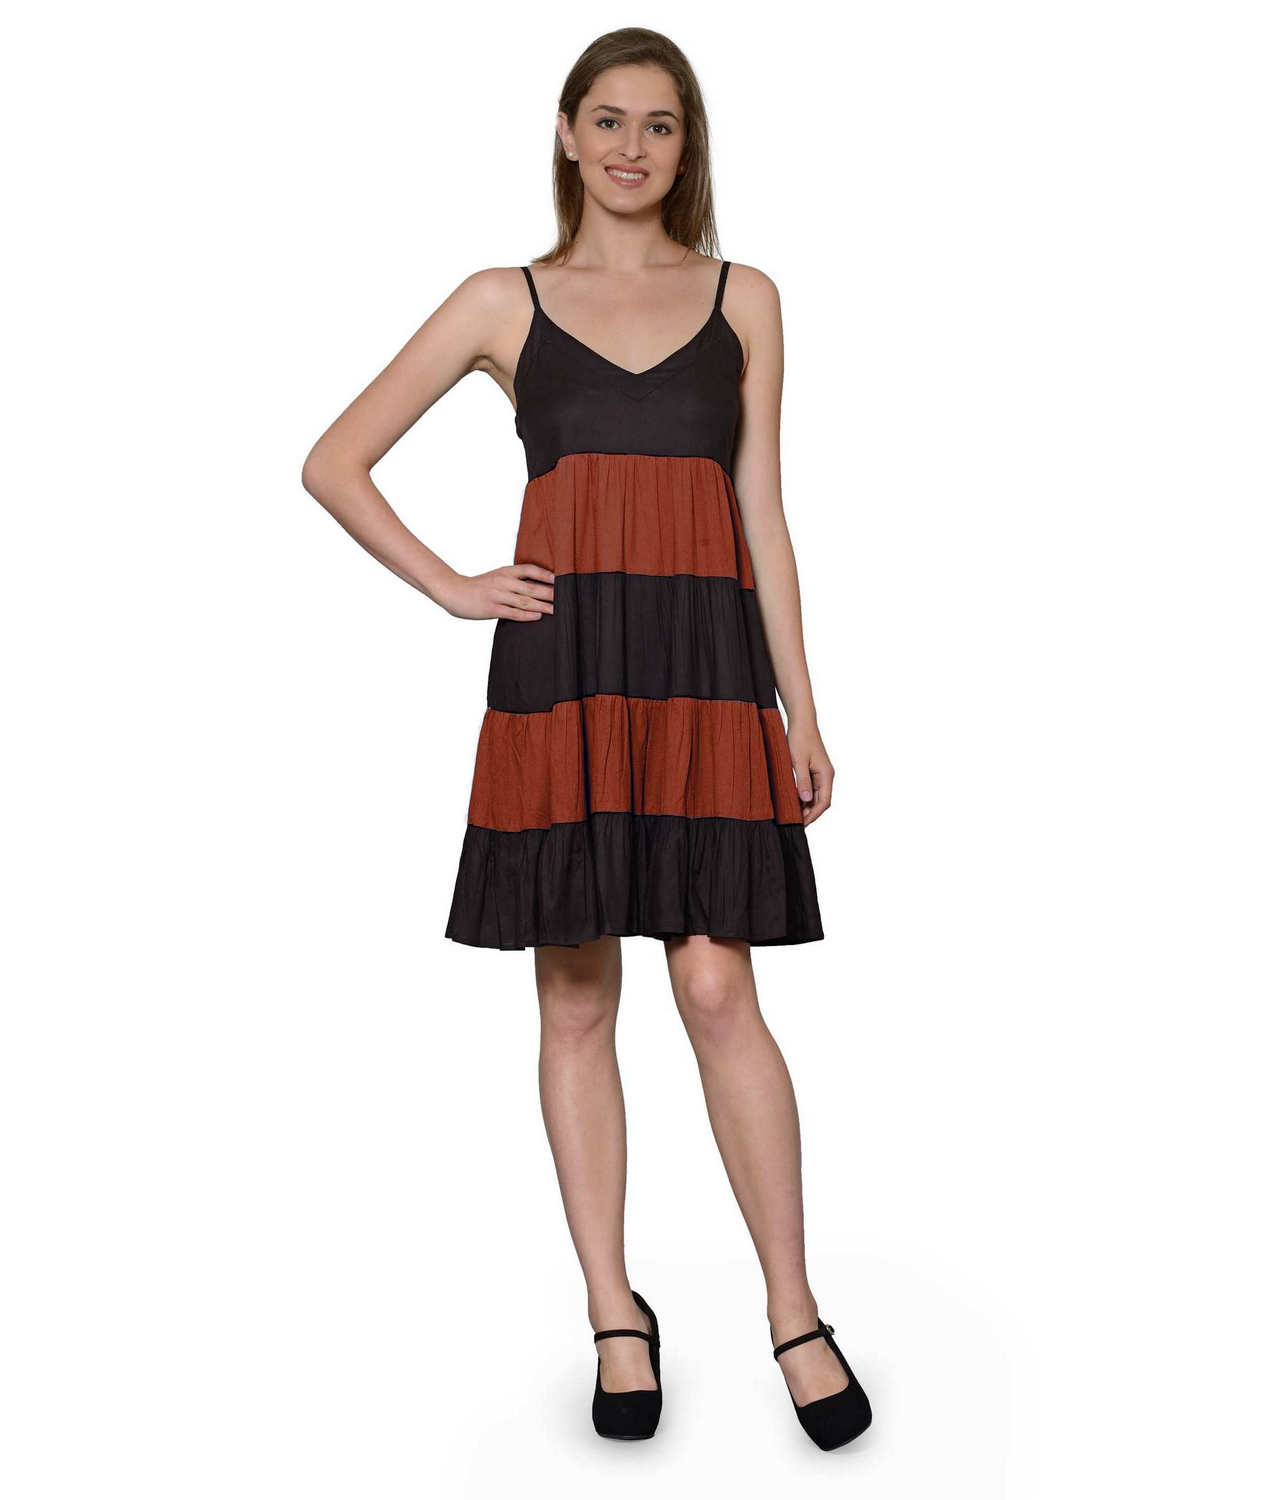 Cocktail Knee Length Dress with Shrug in Black:Maroon